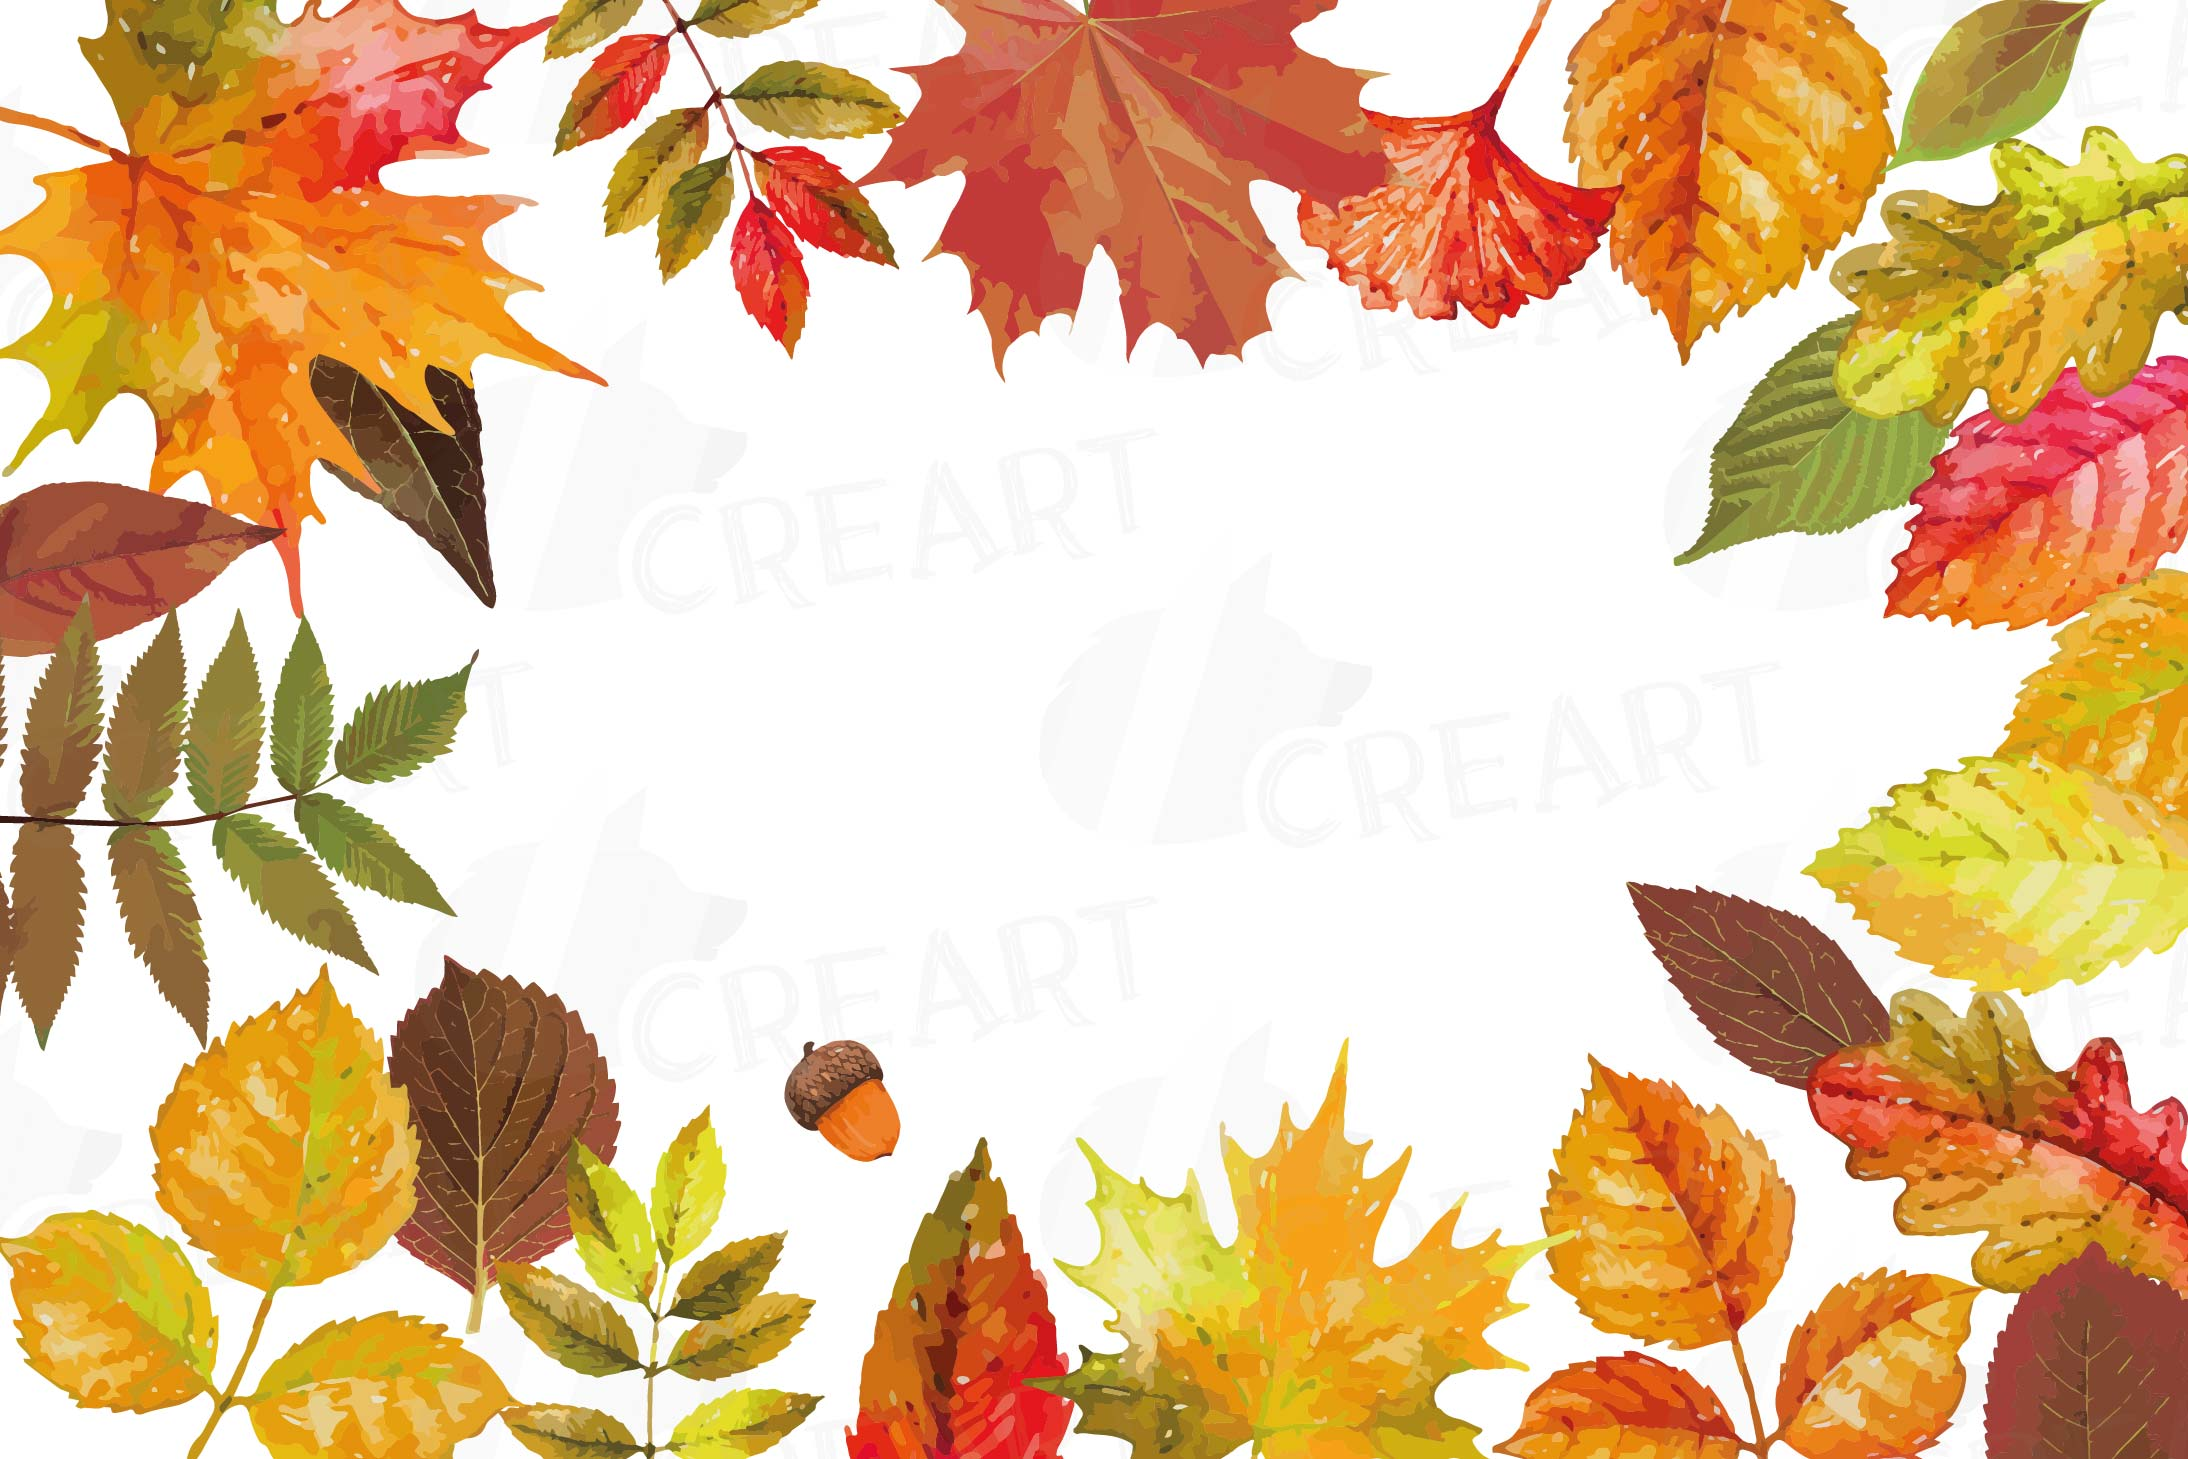 Autumn leafs watercolor clip art pack, watercolor fall frame.